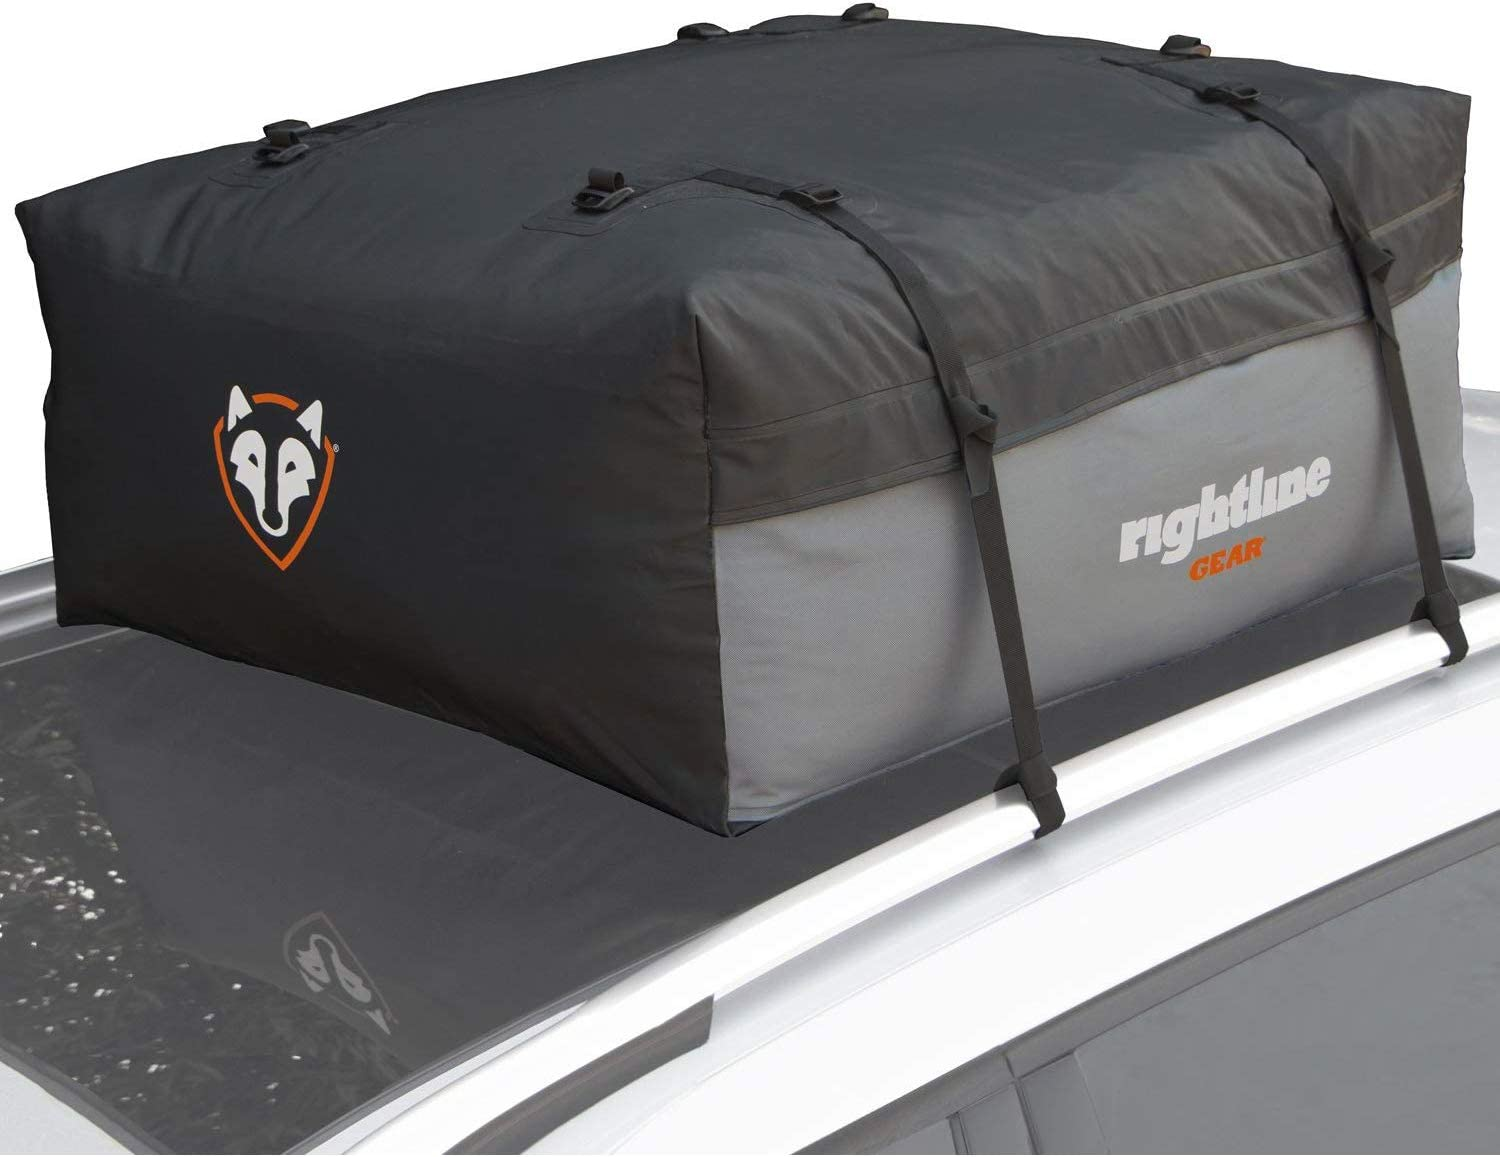 Rightline Gear Sport Roof Top Cargo Bag